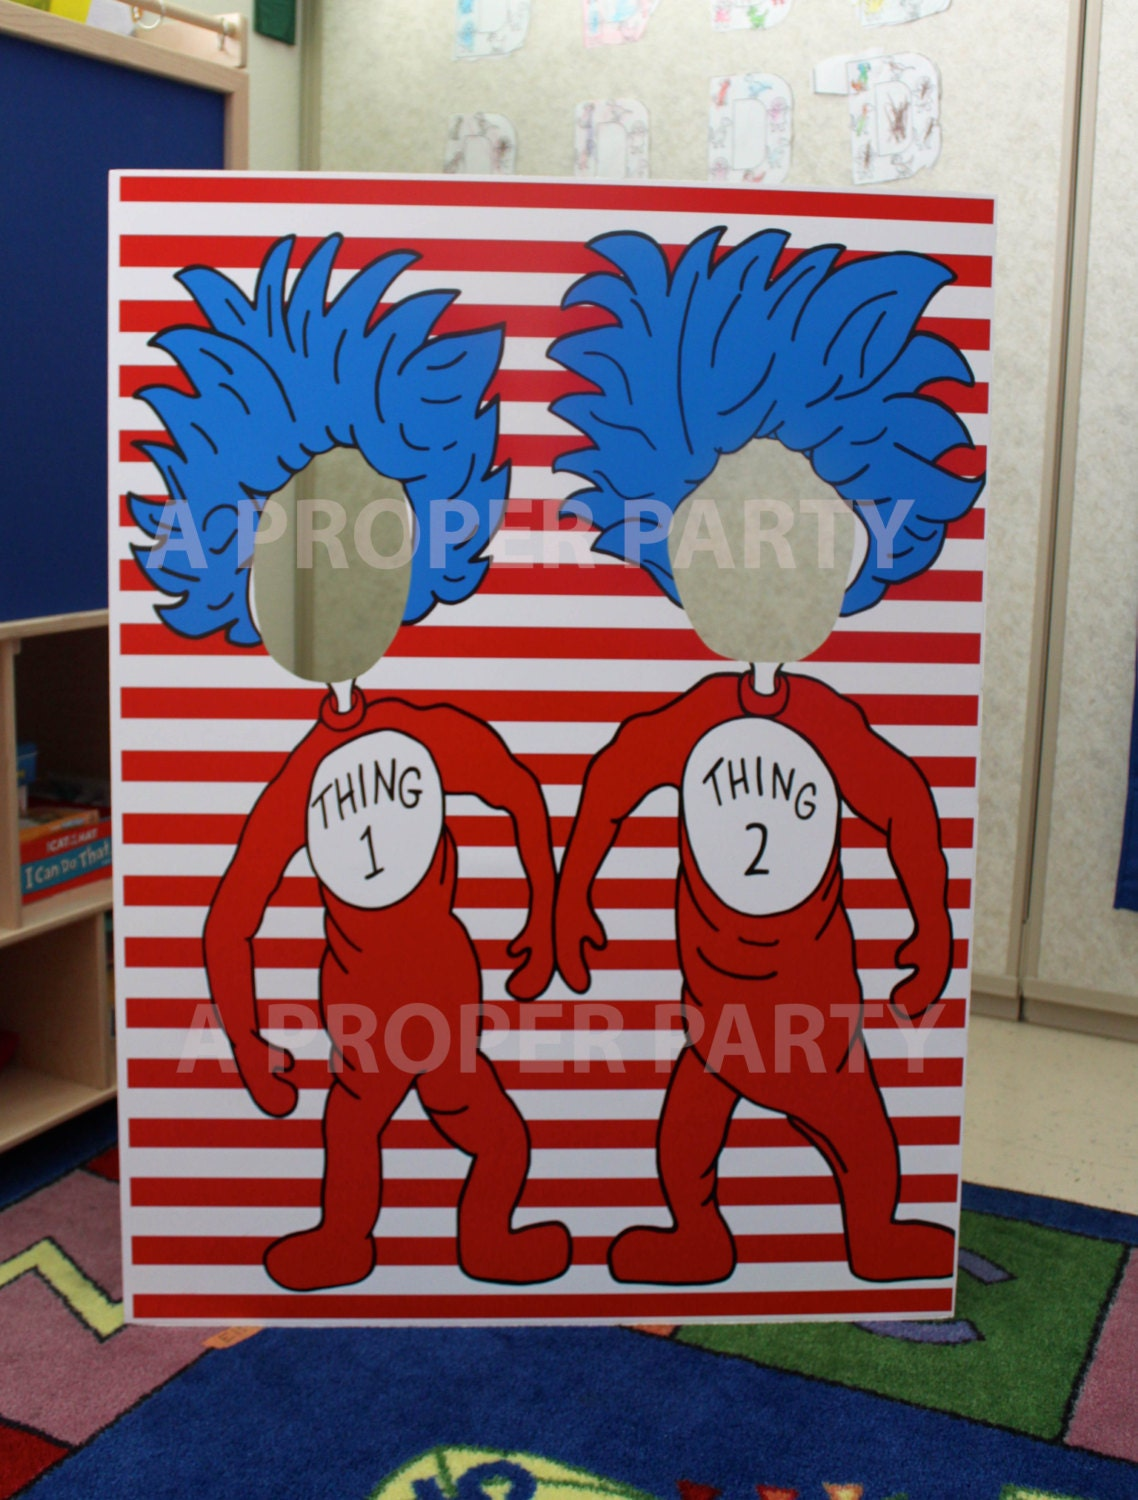 Christmas door decorating contest ideas - Thing 1 And Thing 2 Thing 2 Thing 2 Prop Dr By Aproperparty